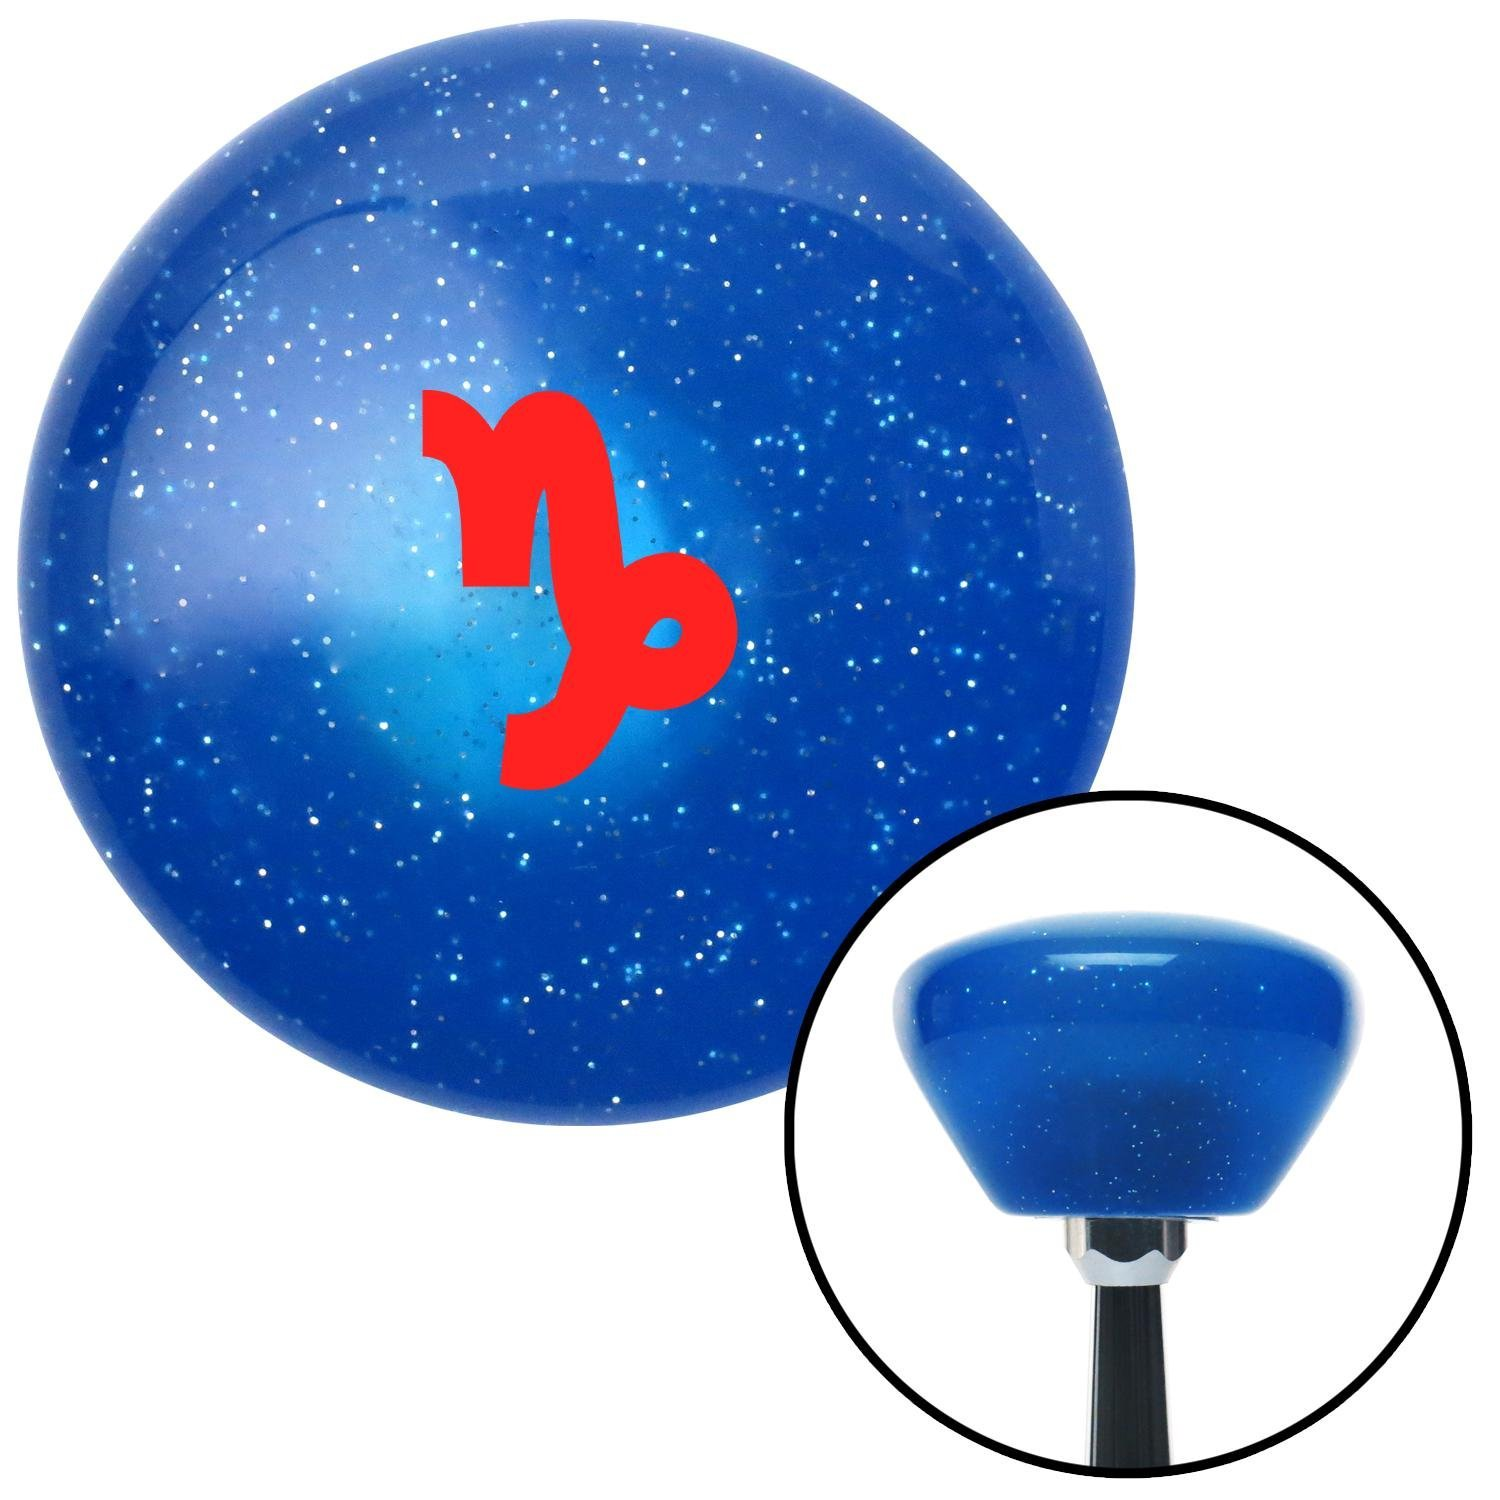 American Shifter 289556 Shift Knob Red Capricorn Blue Retro Metal Flake with M16 x 1.5 Insert